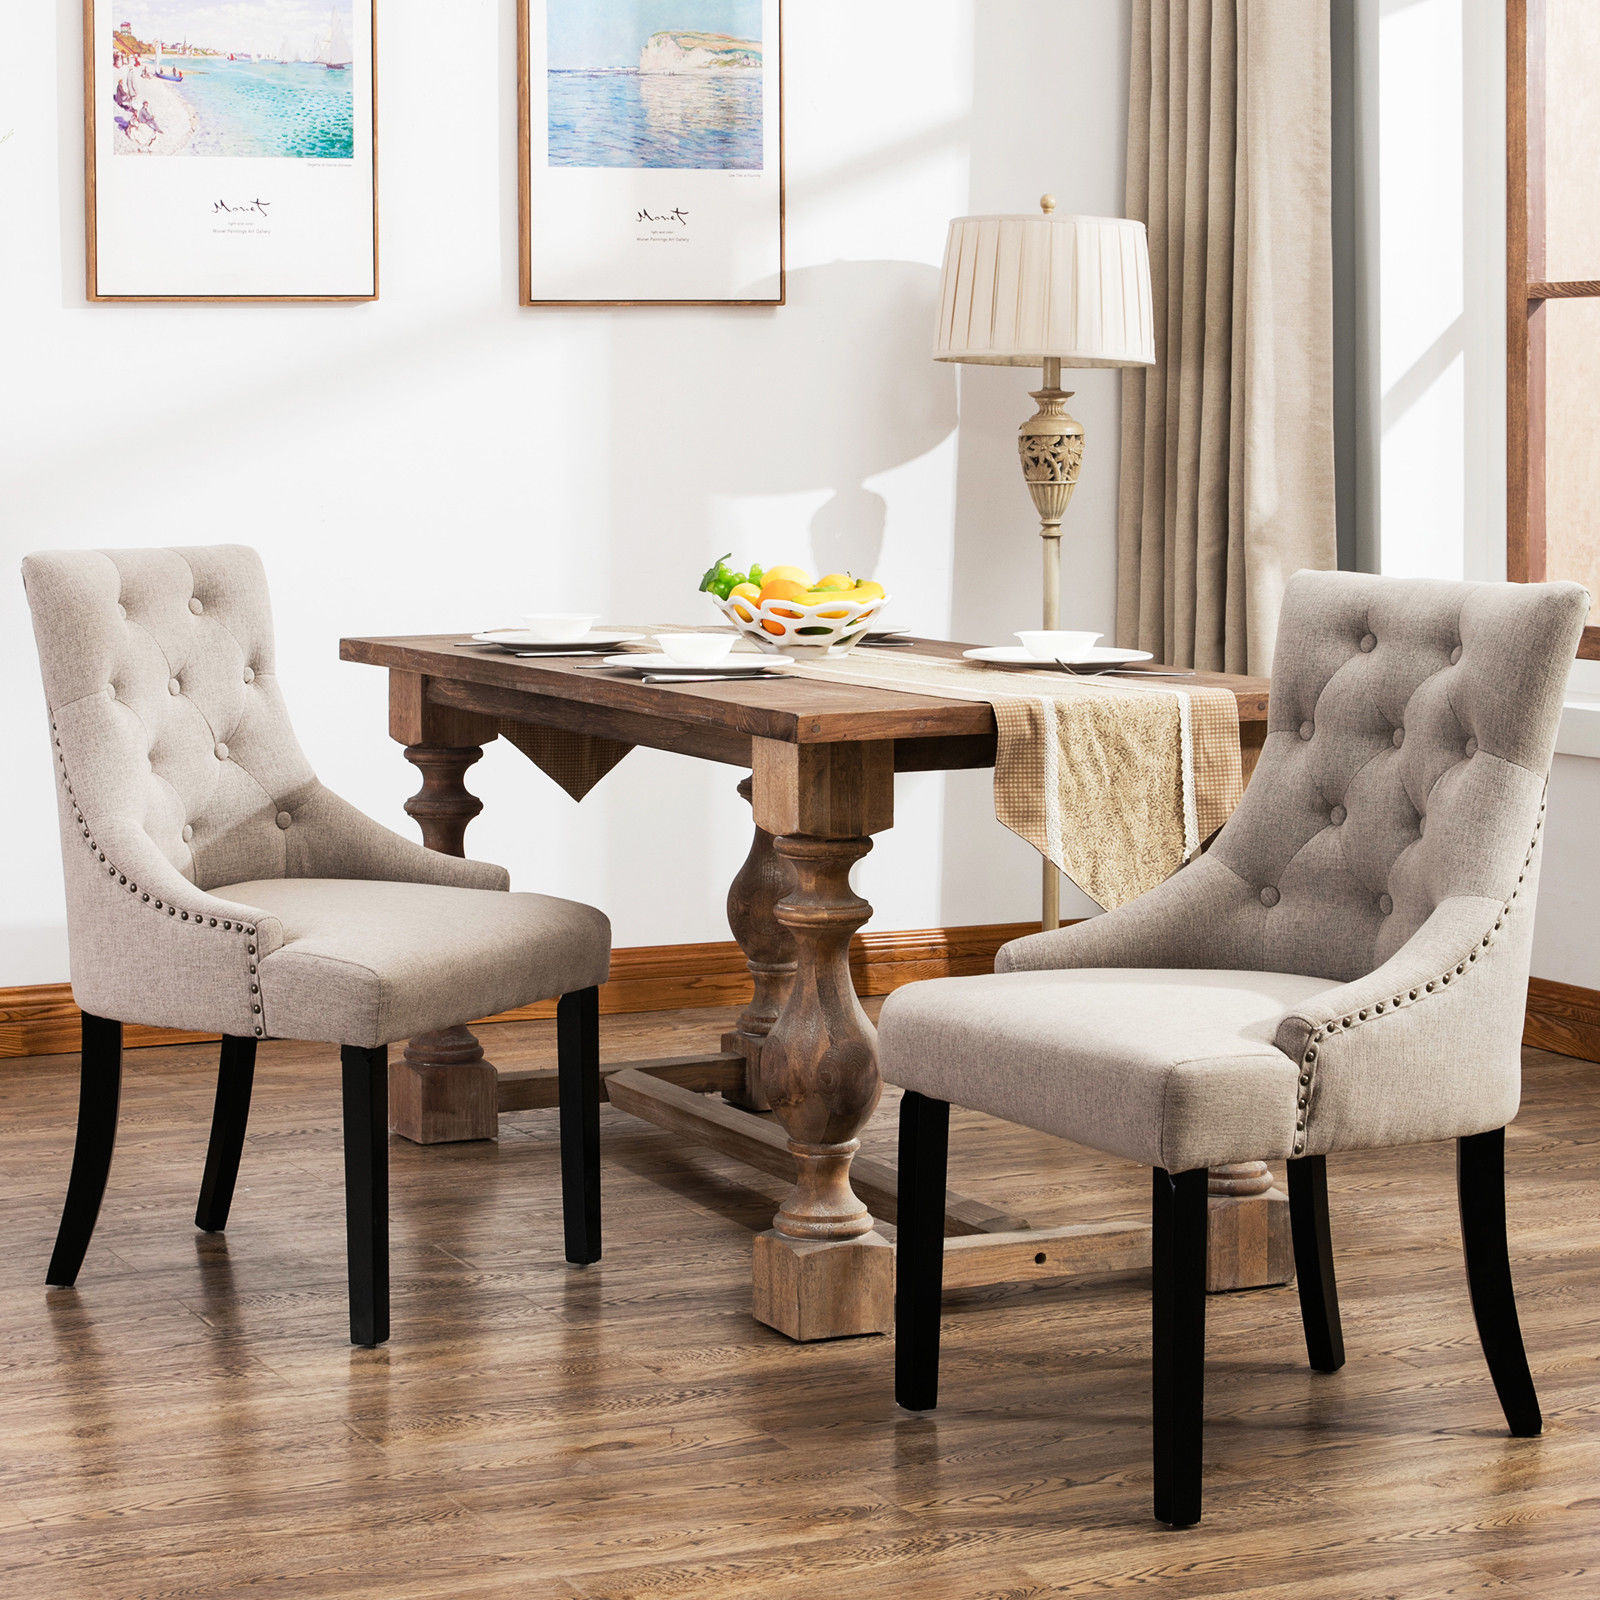 details about set curved shape linen fabric upholstered dining accent chair beige furniture tufted round barn table telescope rectangle tablecloth sizes oval outdoor cool console